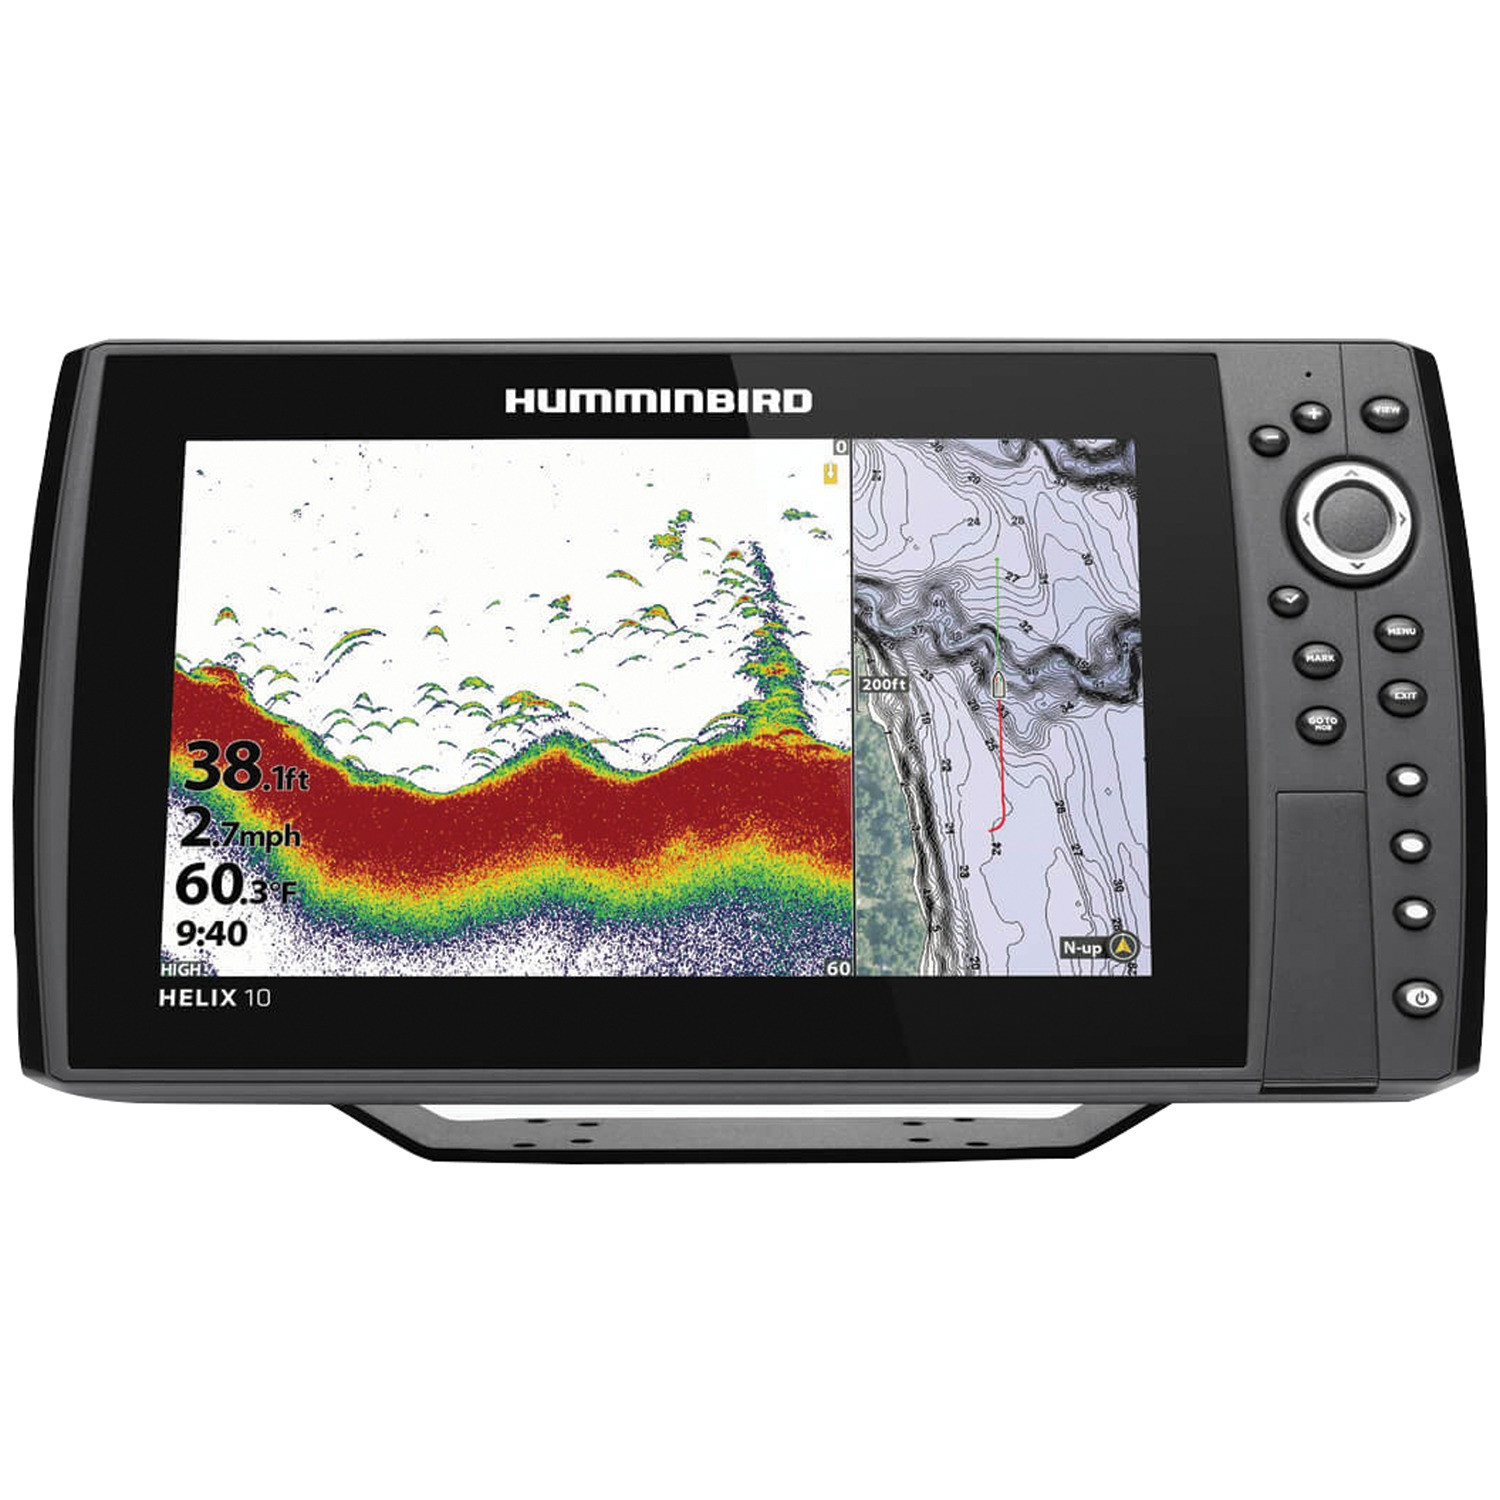 "Humminbird 410870-1 HELIX 10 CHIRP Sonar G3N Dual Spectrum Combo Fishfinder/GPS/Chartplotter with 10.1"" Display"